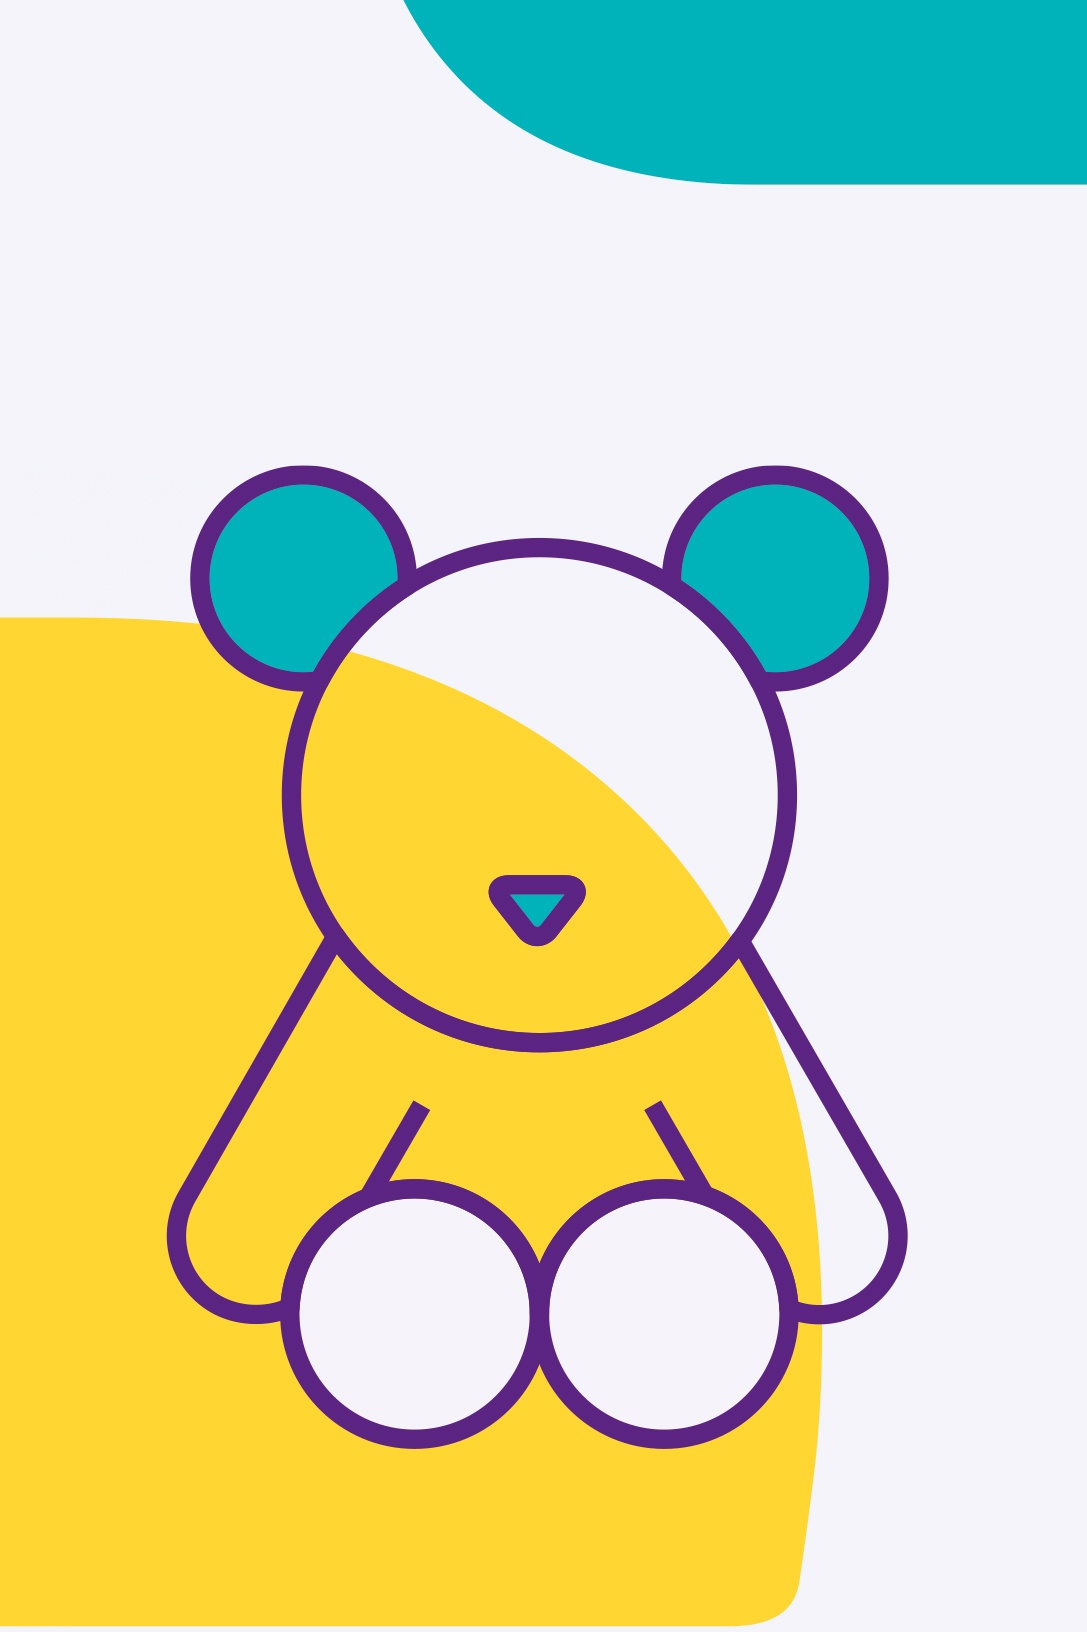 Illustration from the report showing a teddybear